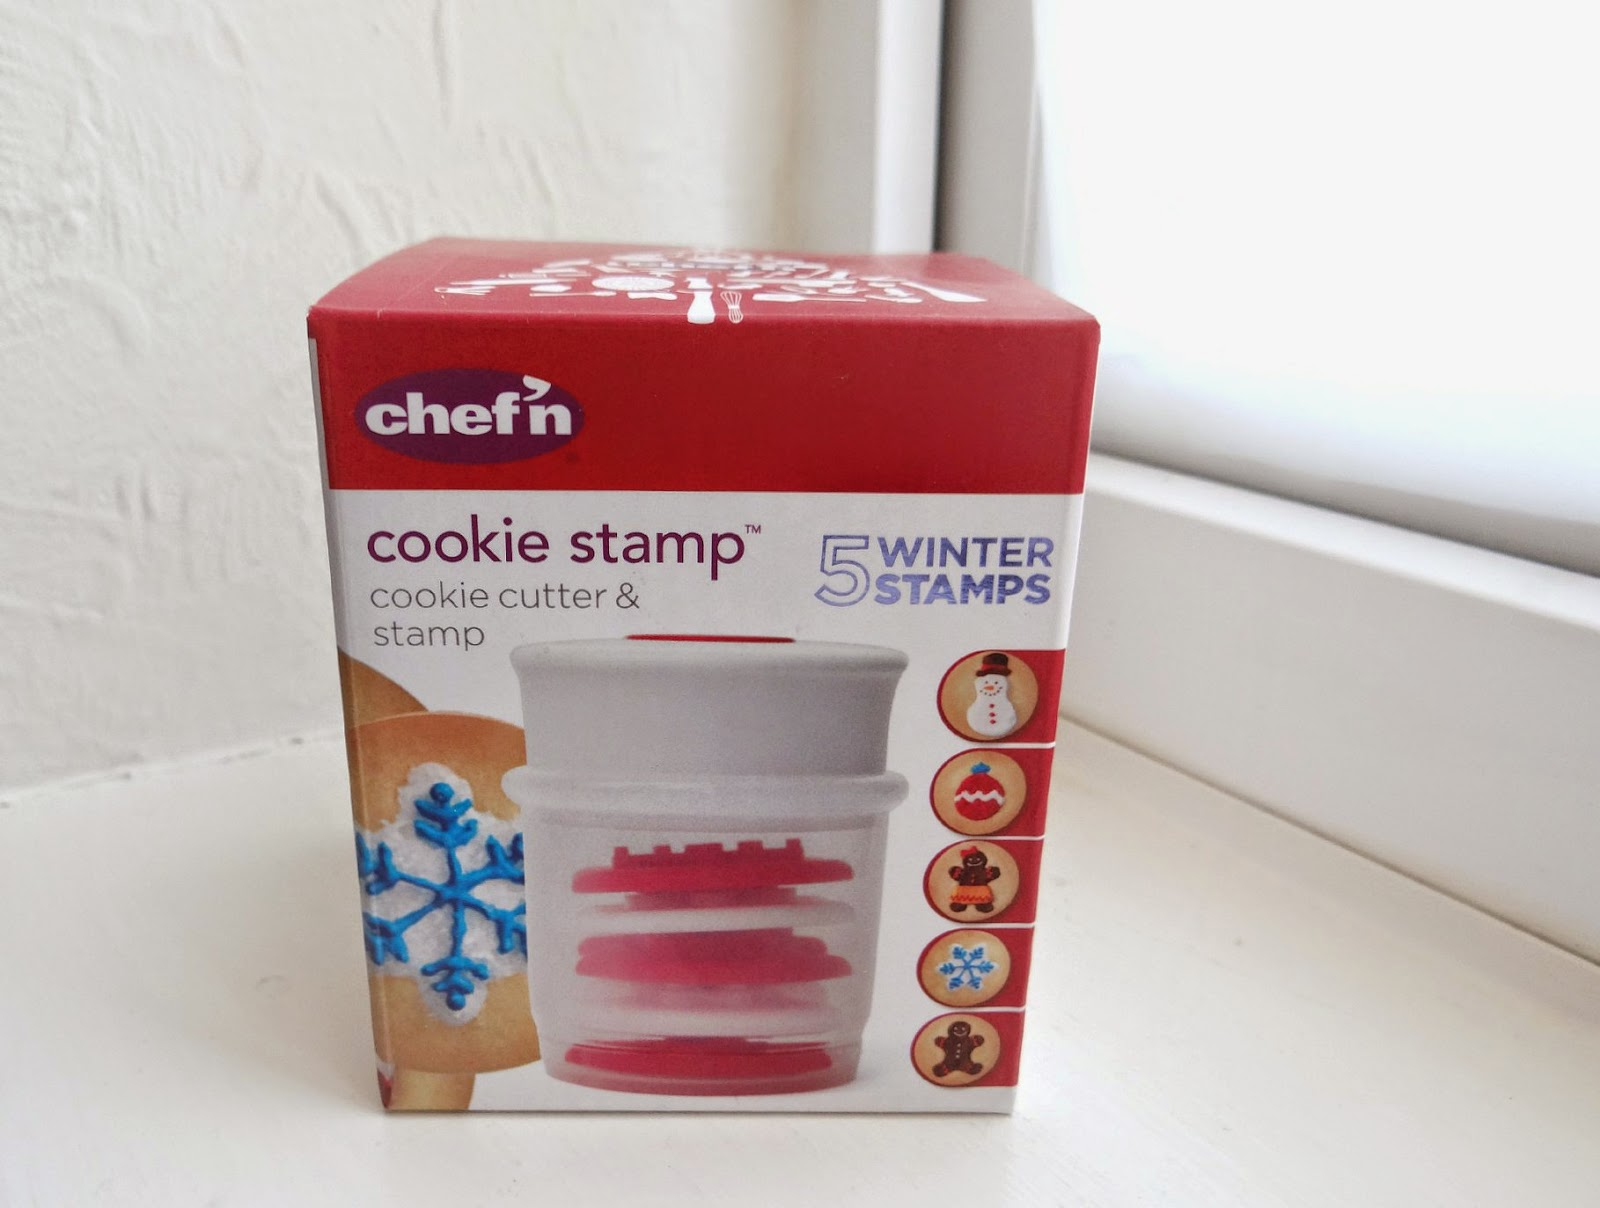 Christmas Baking, Chef'n Winter Cookie Stamp, handmade Christmas Gifts